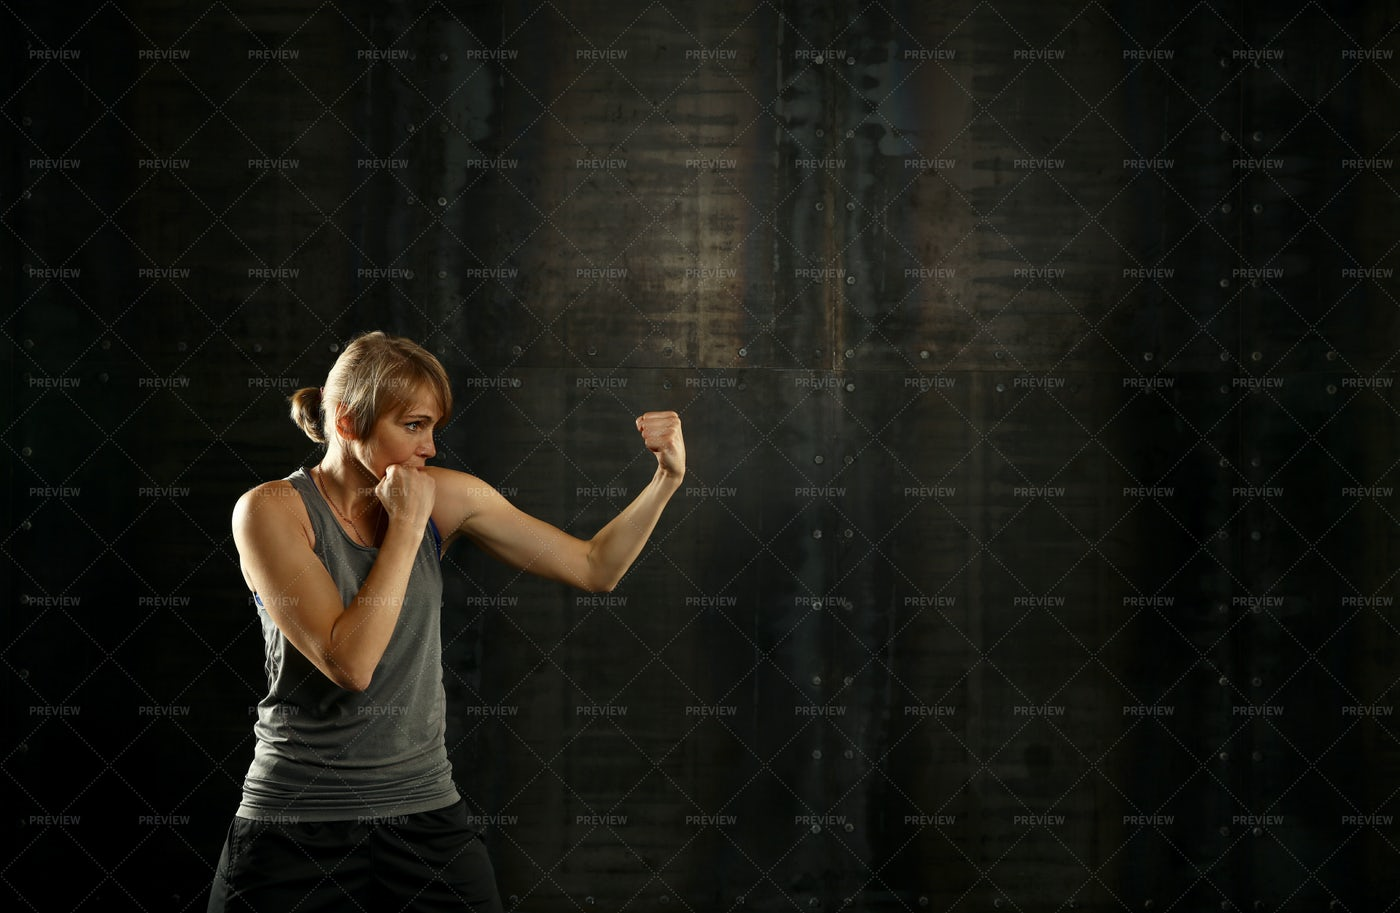 Taking A Fighting Stance: Stock Photos